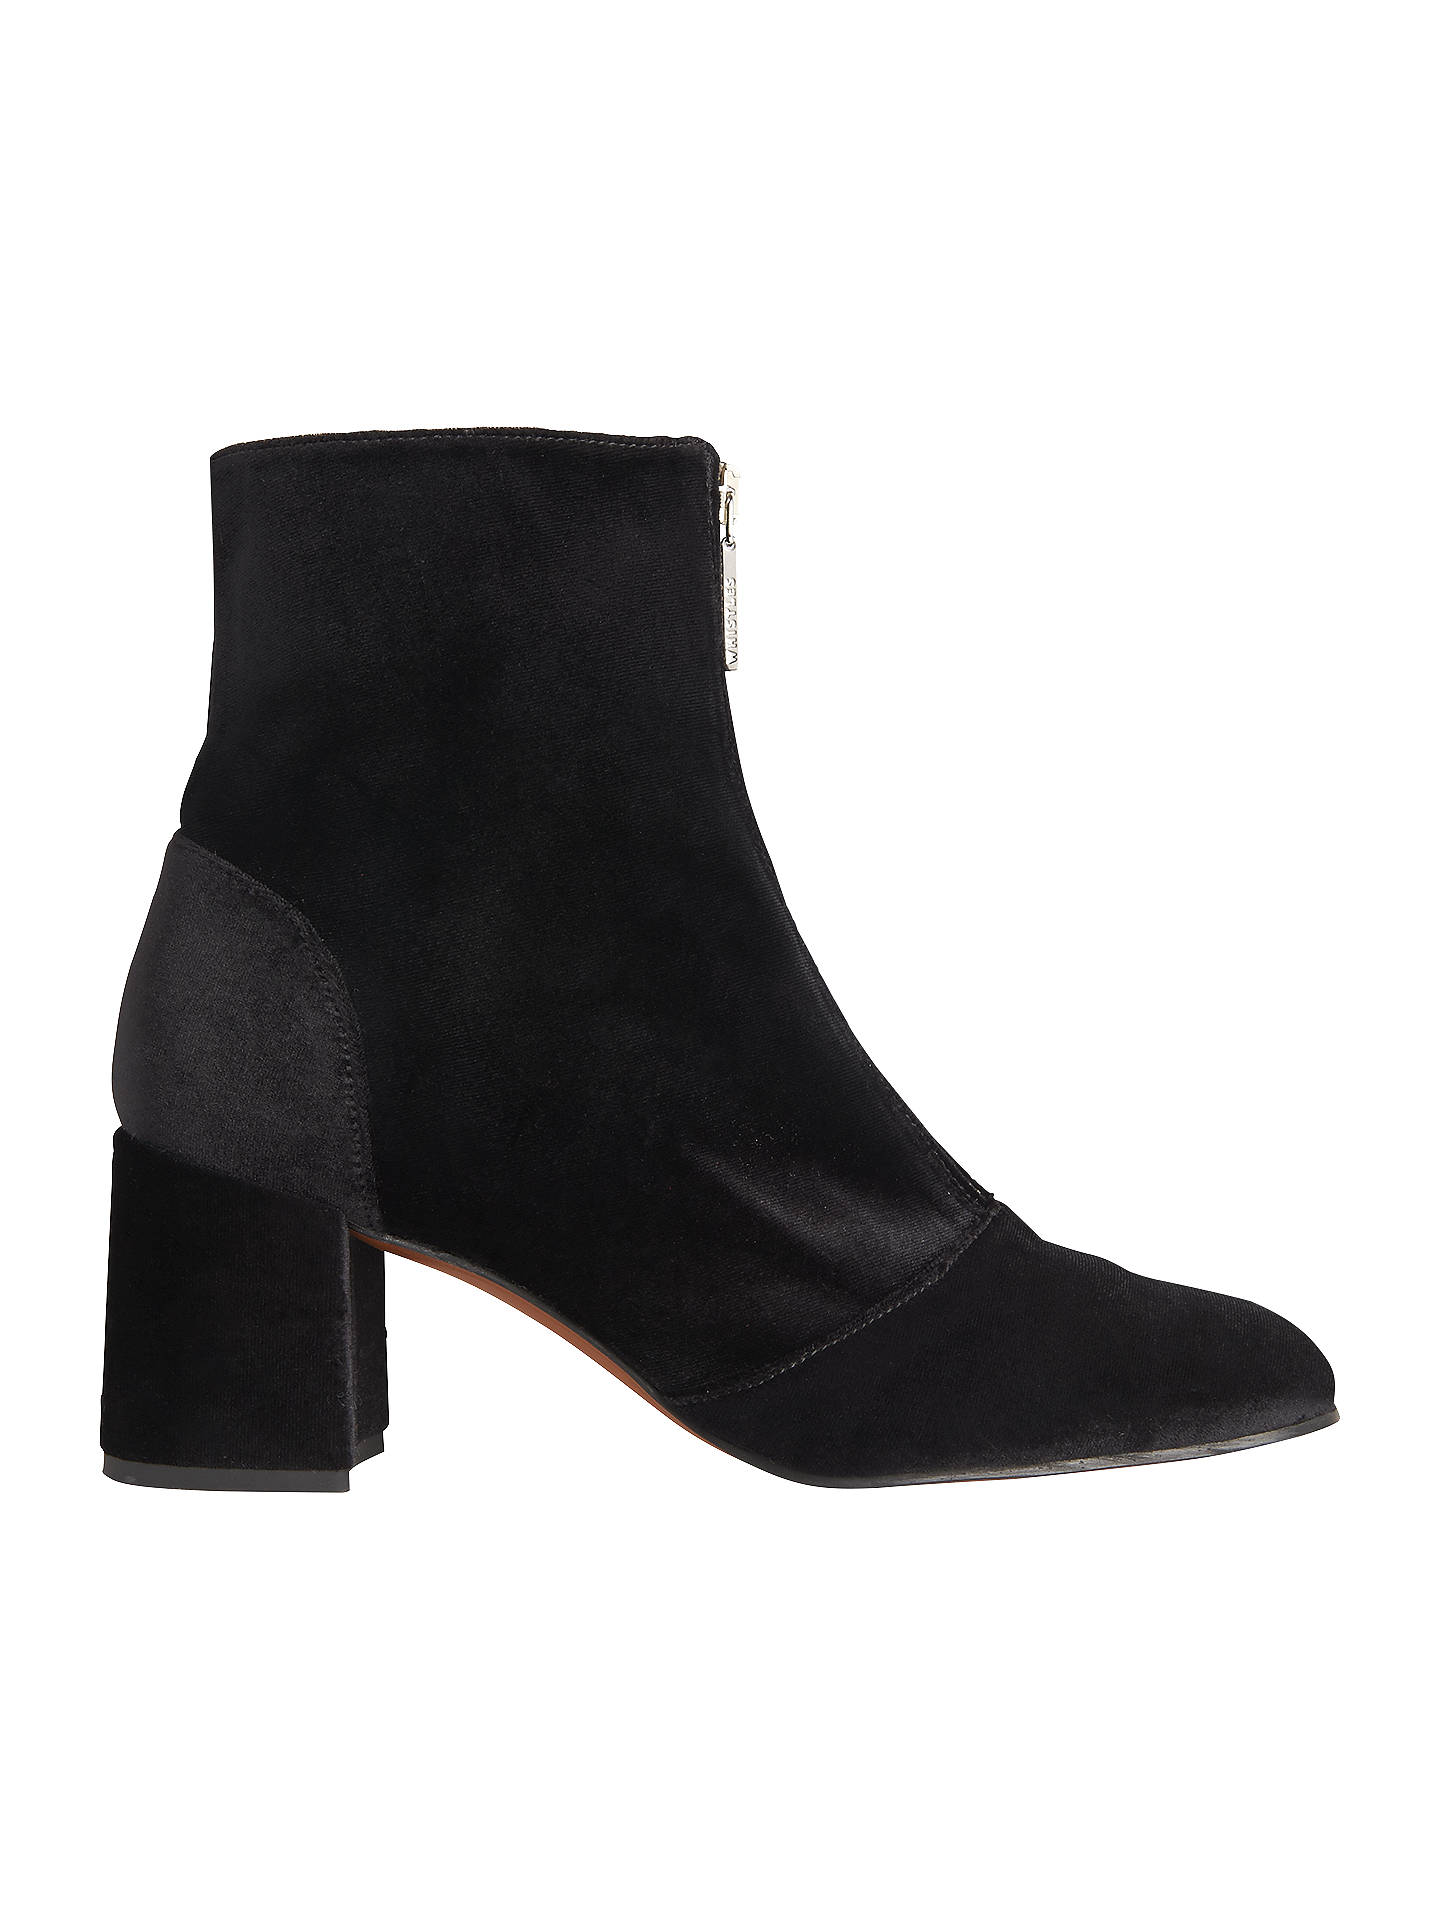 BuyWhistles Rowan Zip Front Ankle Boots, Black, 8 Online at johnlewis.com